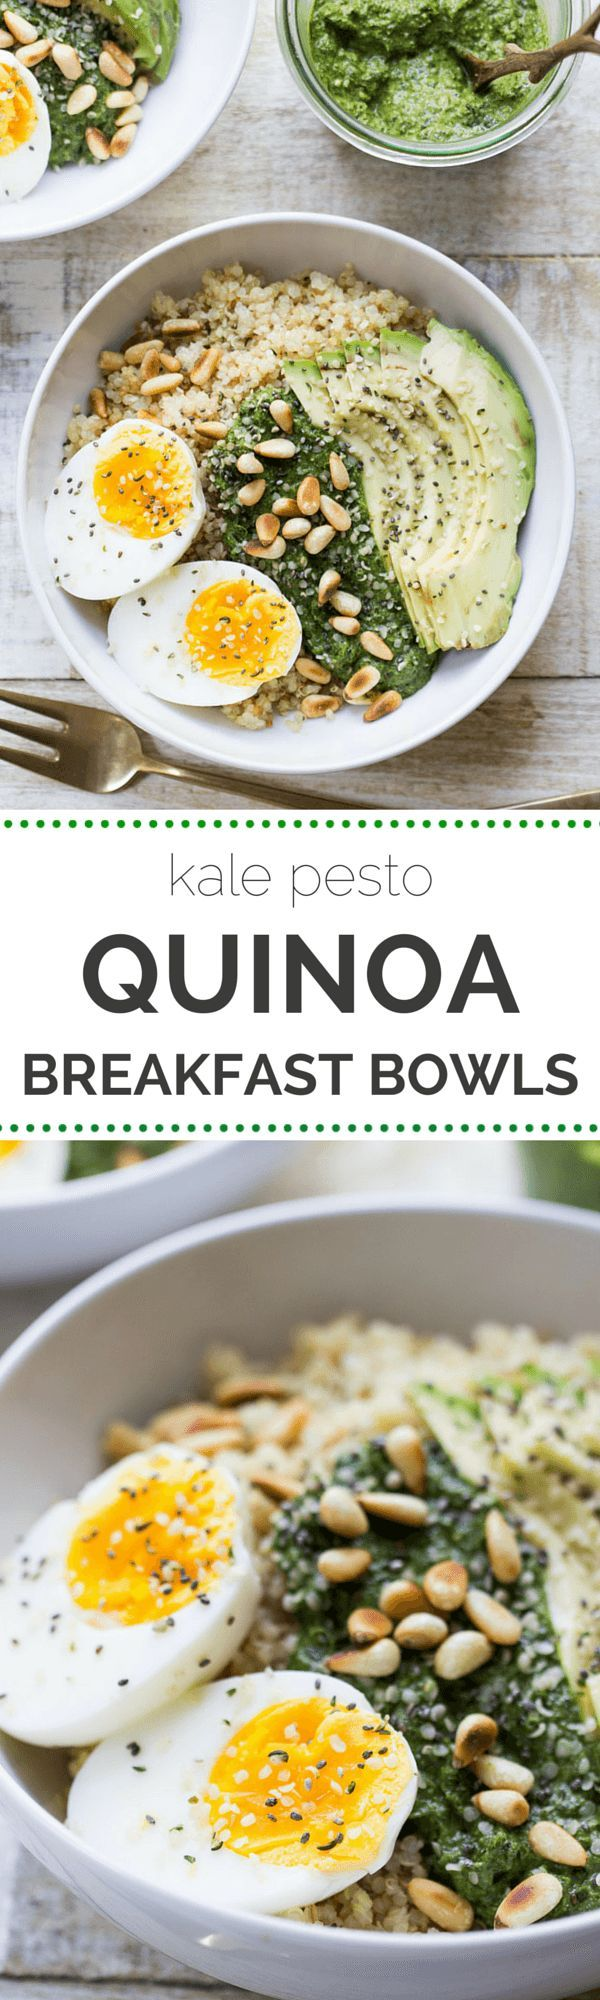 Savory Pesto Quinoa Breakfast Bowls - a healthy breakfast packed full of nutritional superstars.